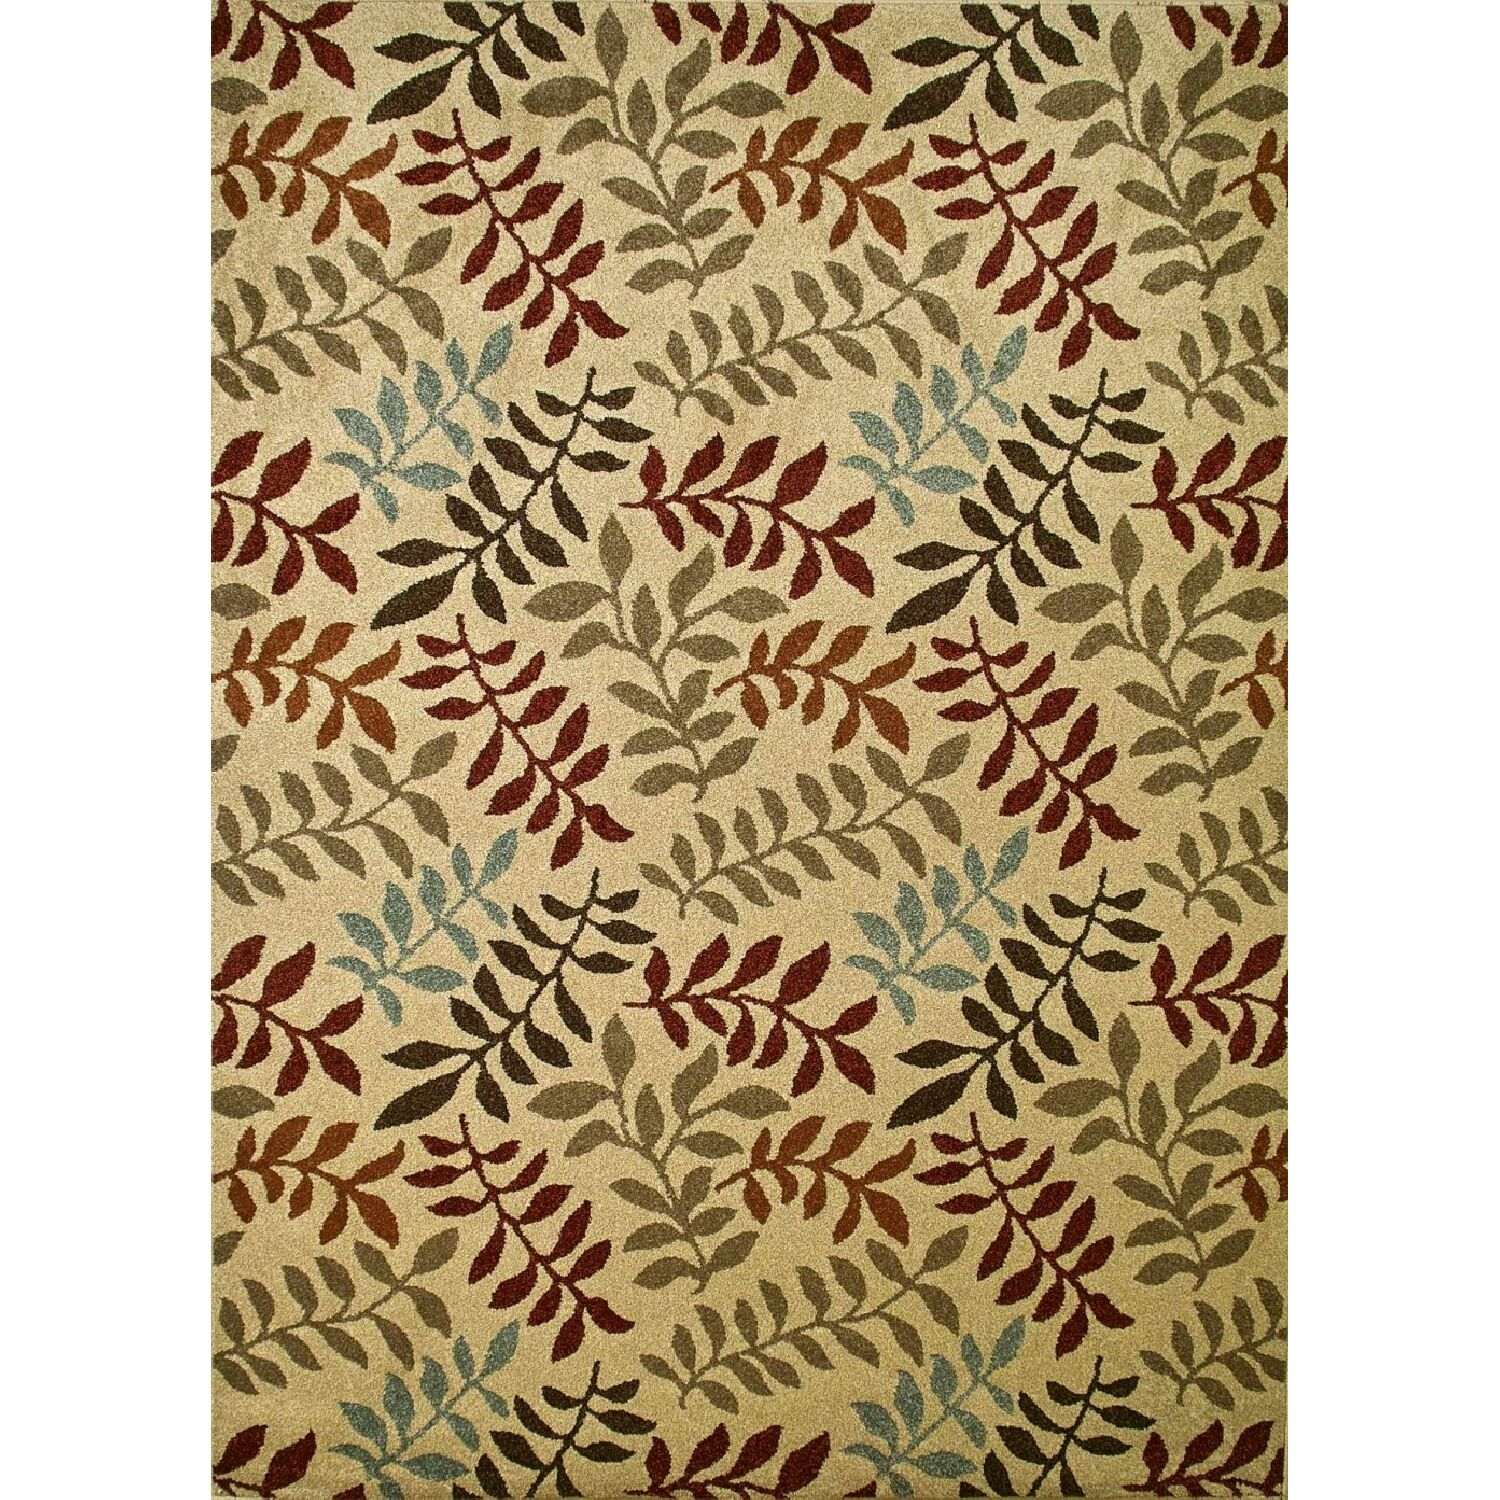 Chester Ivory Leafs Area Rug Rug Size: Rectangle 3'3